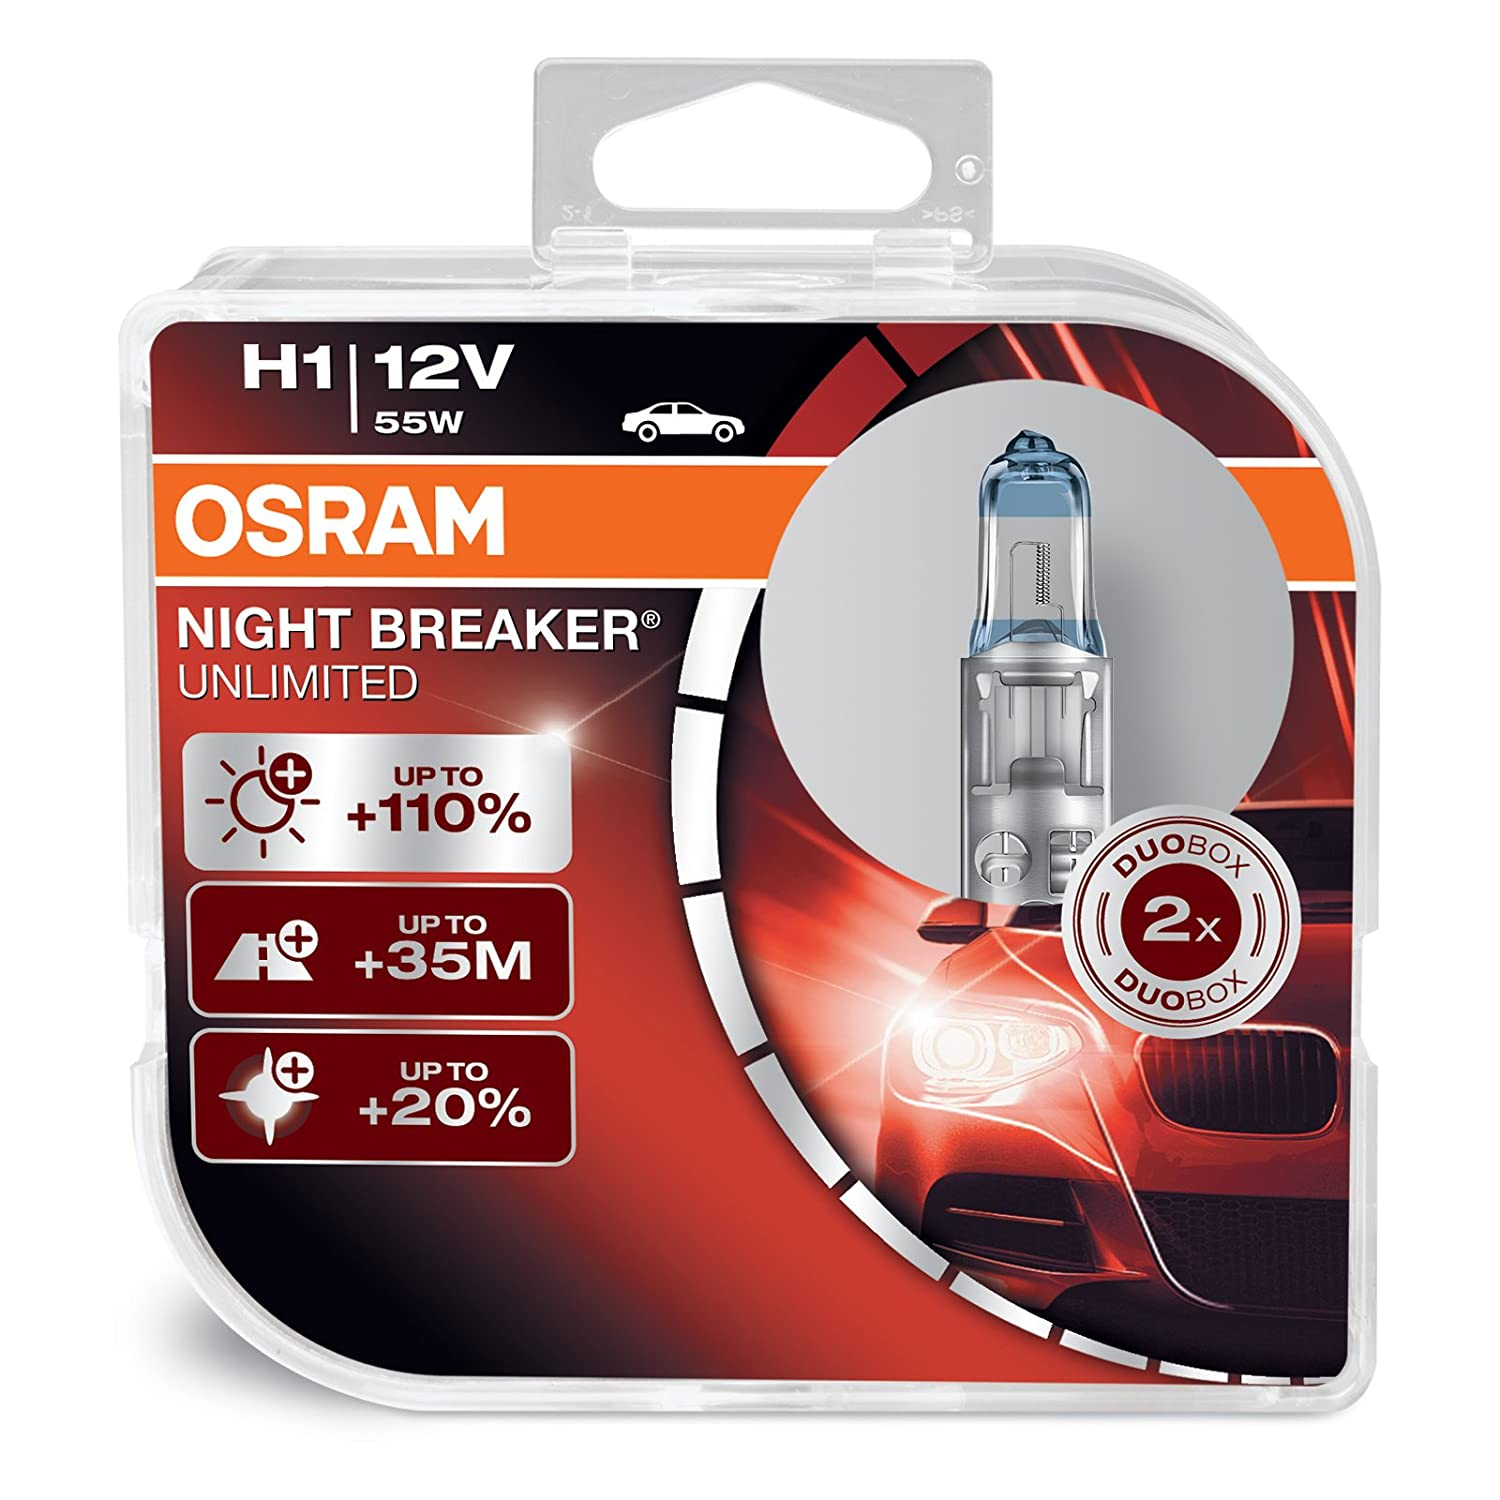 2x Halogen Bulb HQ Automotive HB4 9006 12V 55W Xenon Effect Fog Bulbs D